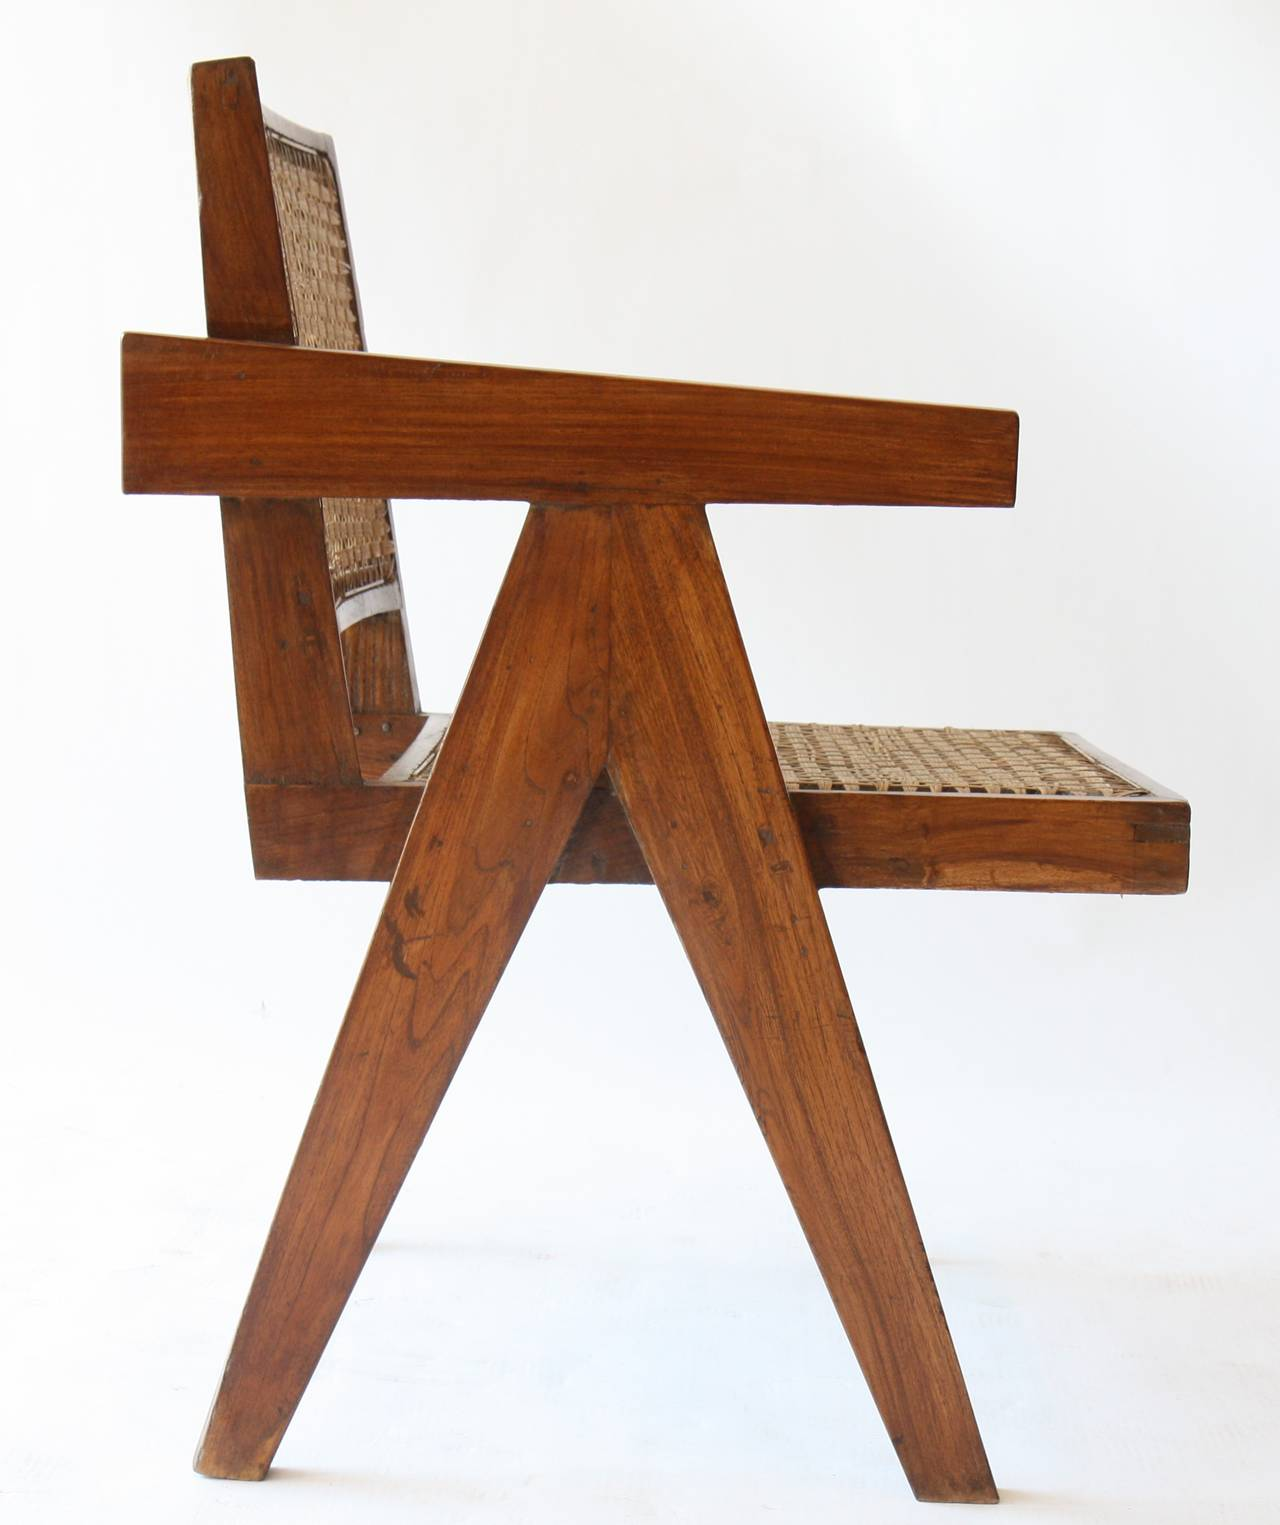 Office Cane Chair by Pierre Jeanneret In Good Condition For Sale In Altwies, LU